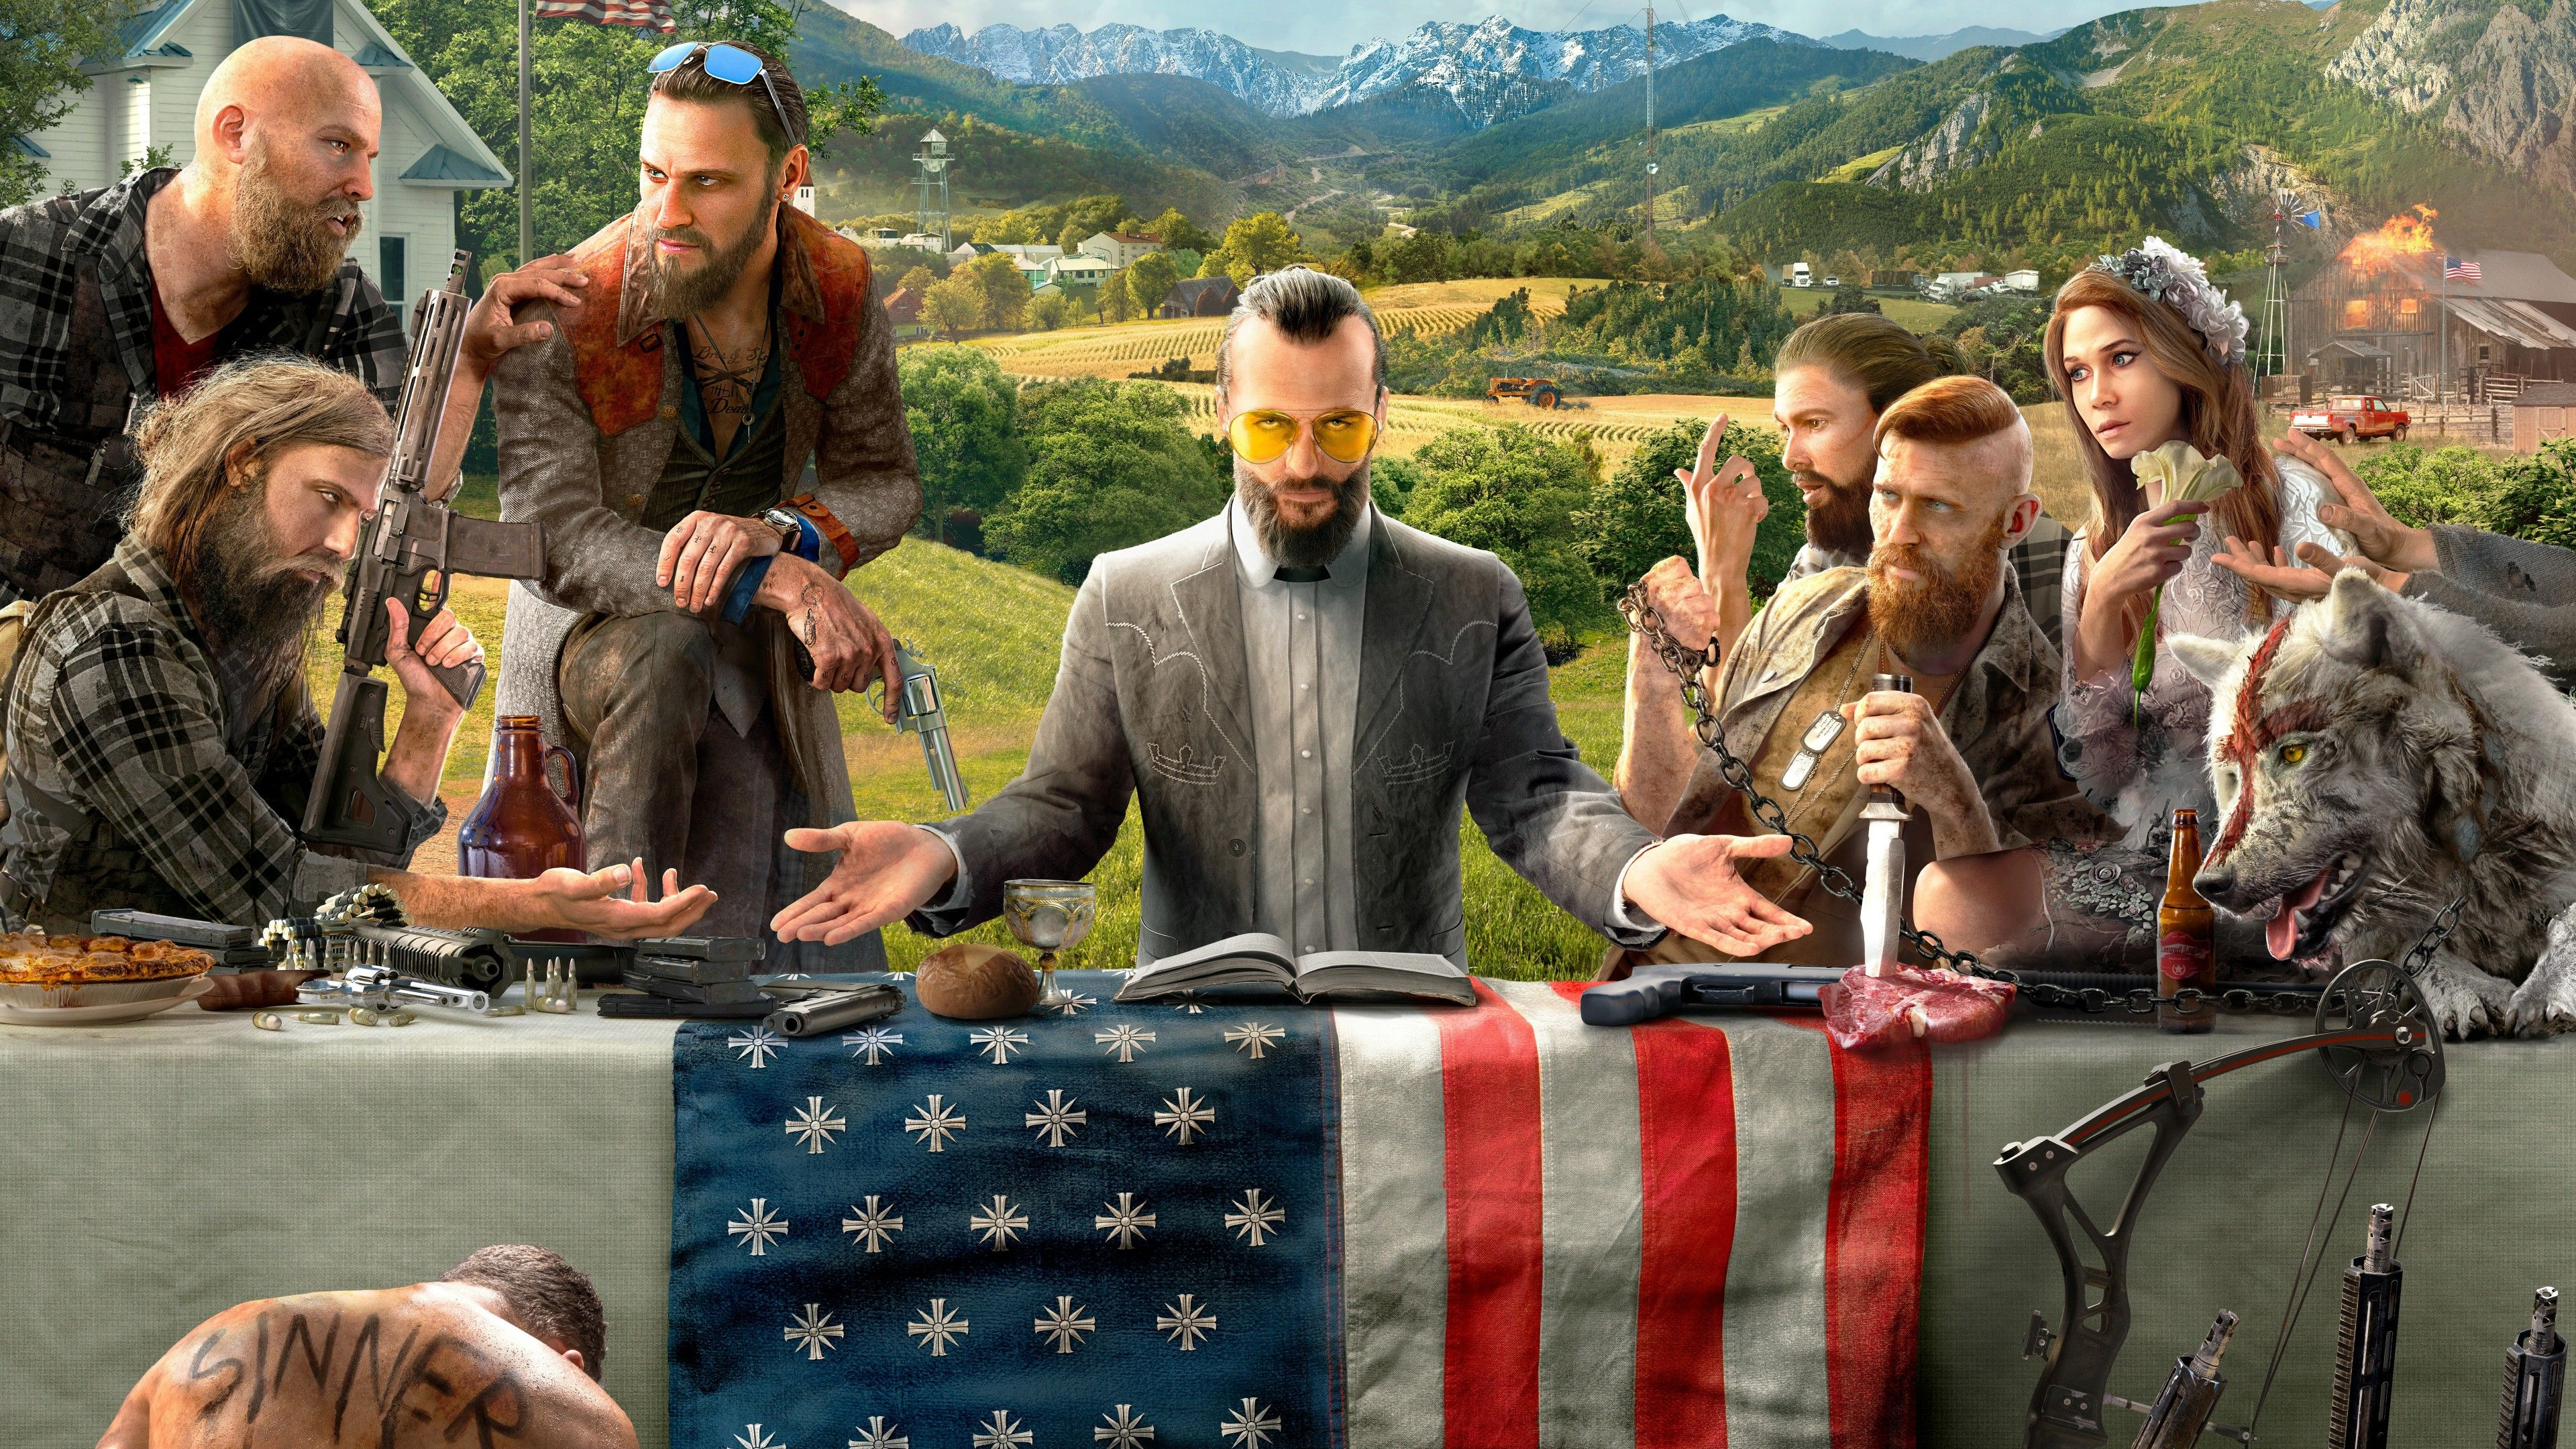 Farcry5 The Best Game Of The Year Get This Awesome 4k Wallpaper For Free If You Like The Game You Can Buy It By Click Xbox One Games Far Cry 5